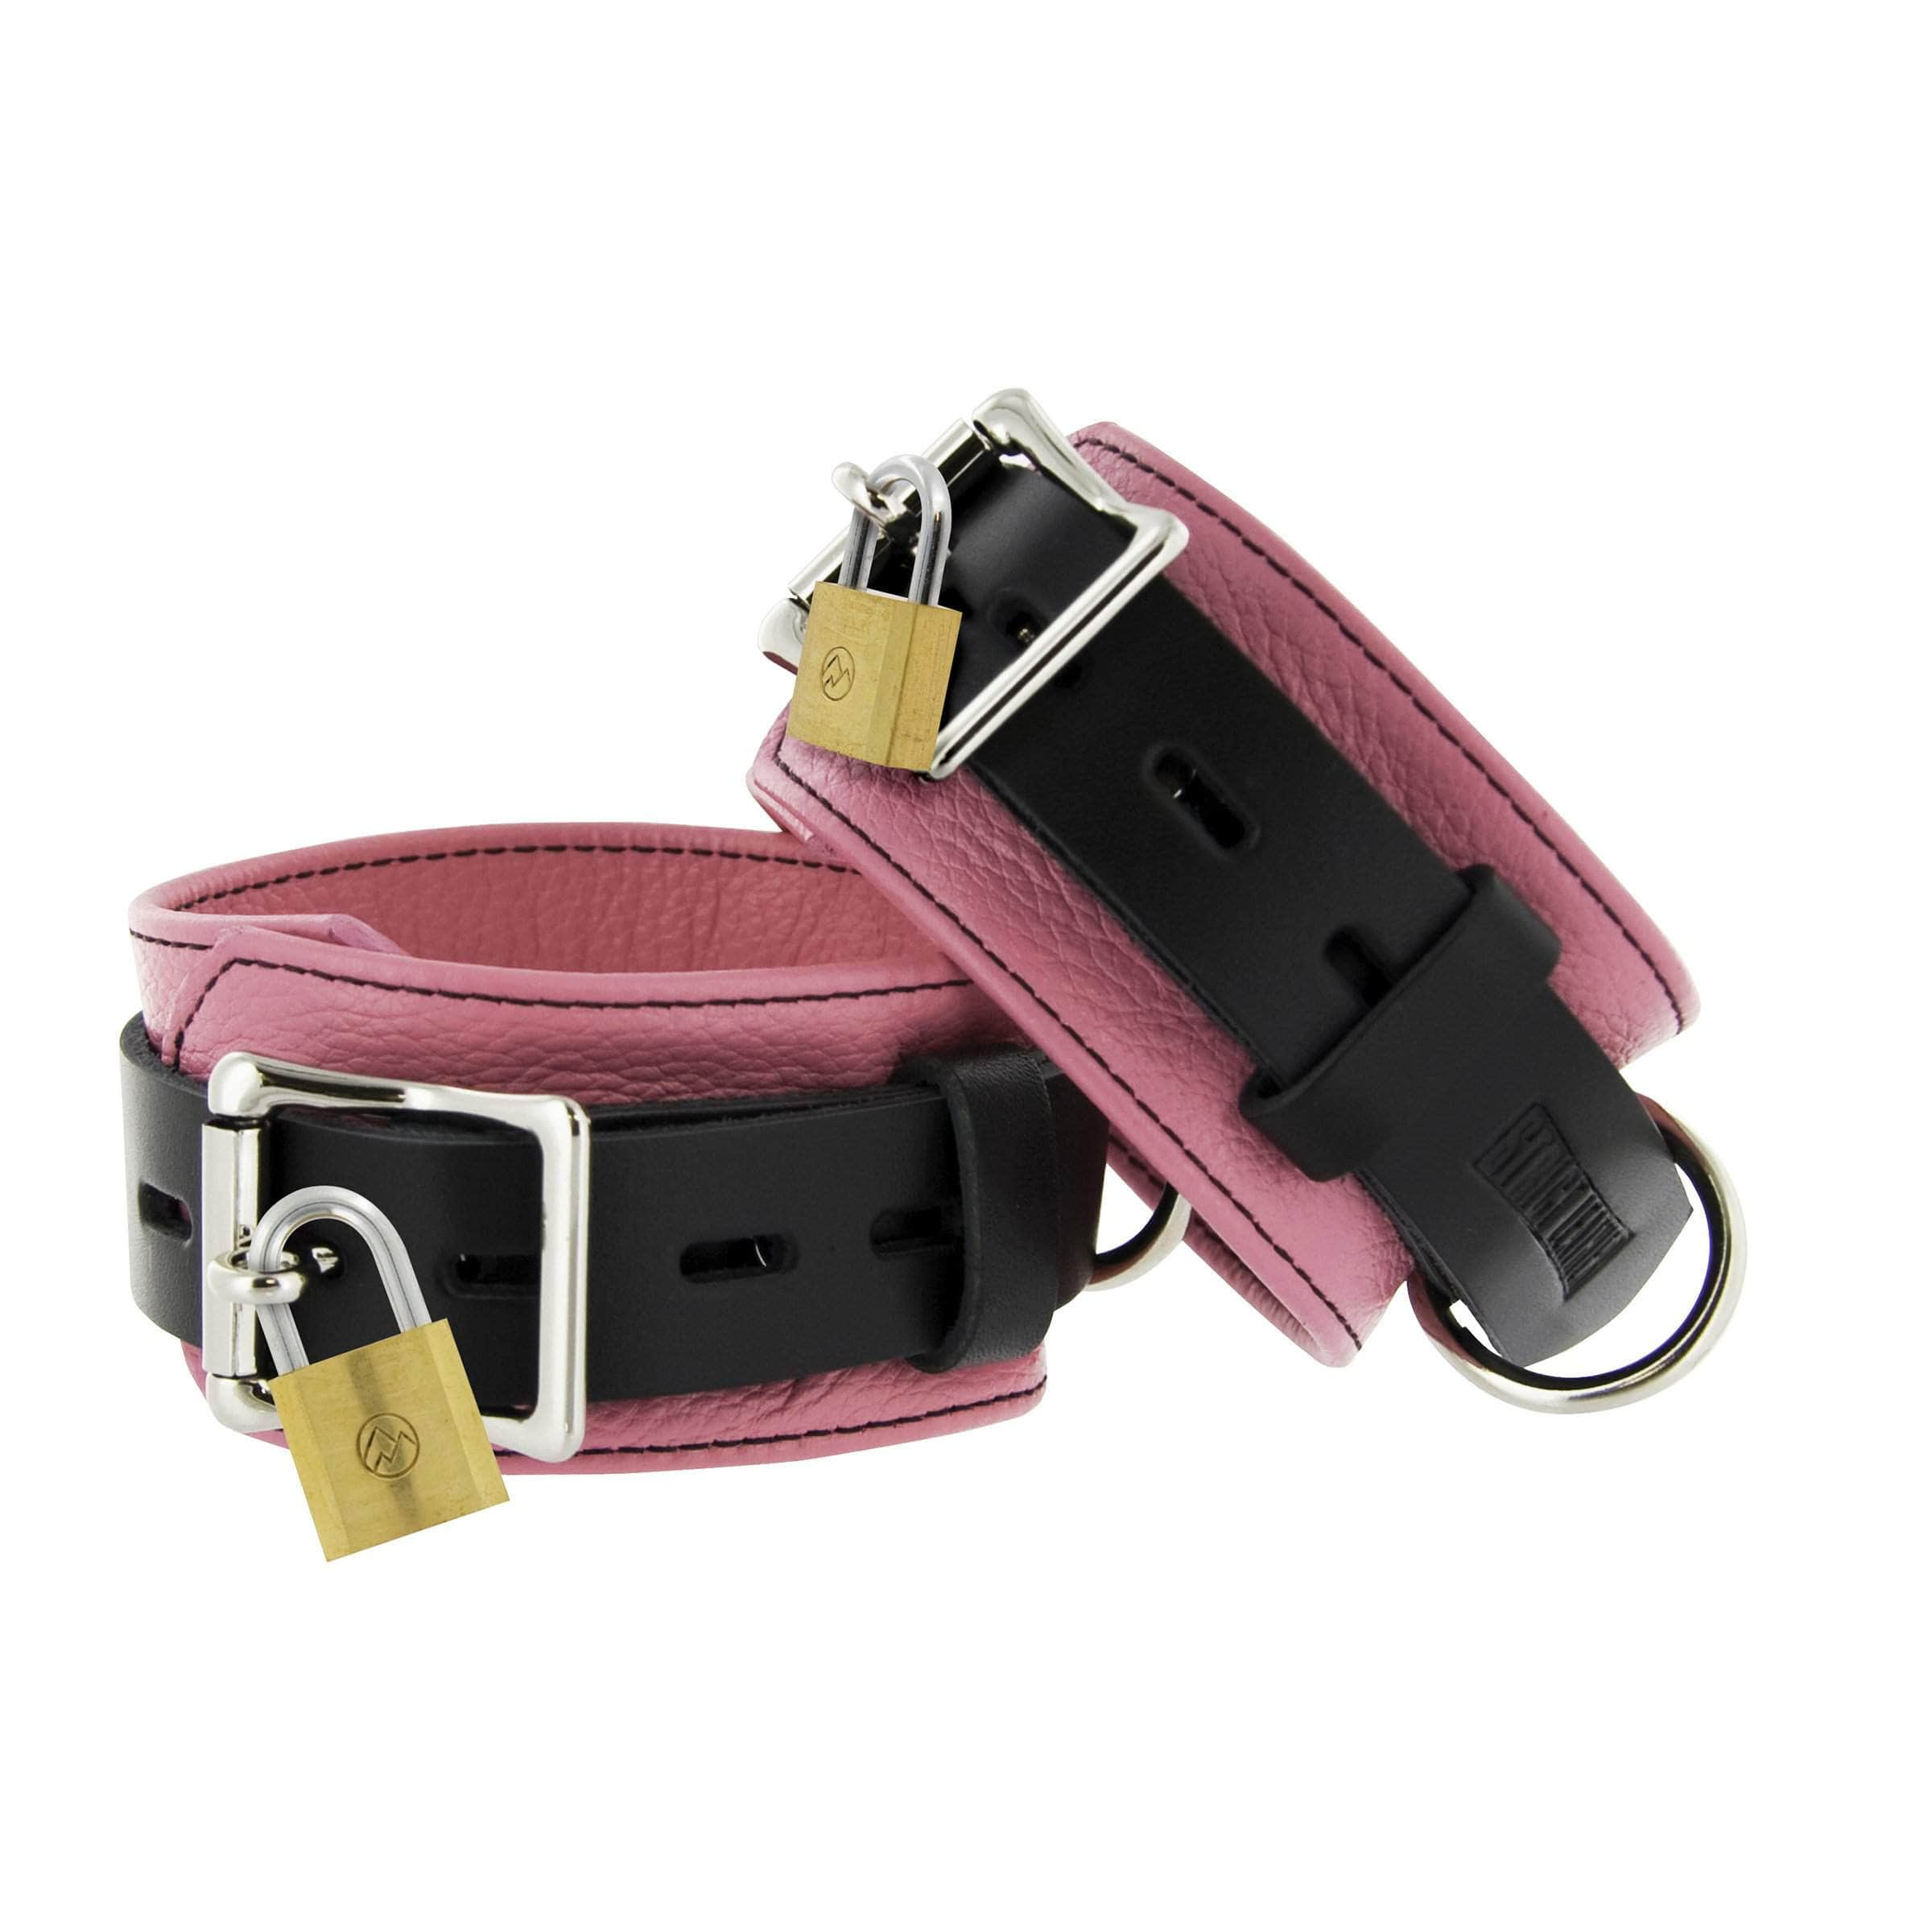 Strict Leather Pink And Black Deluxe Locking Ankle Cuffs